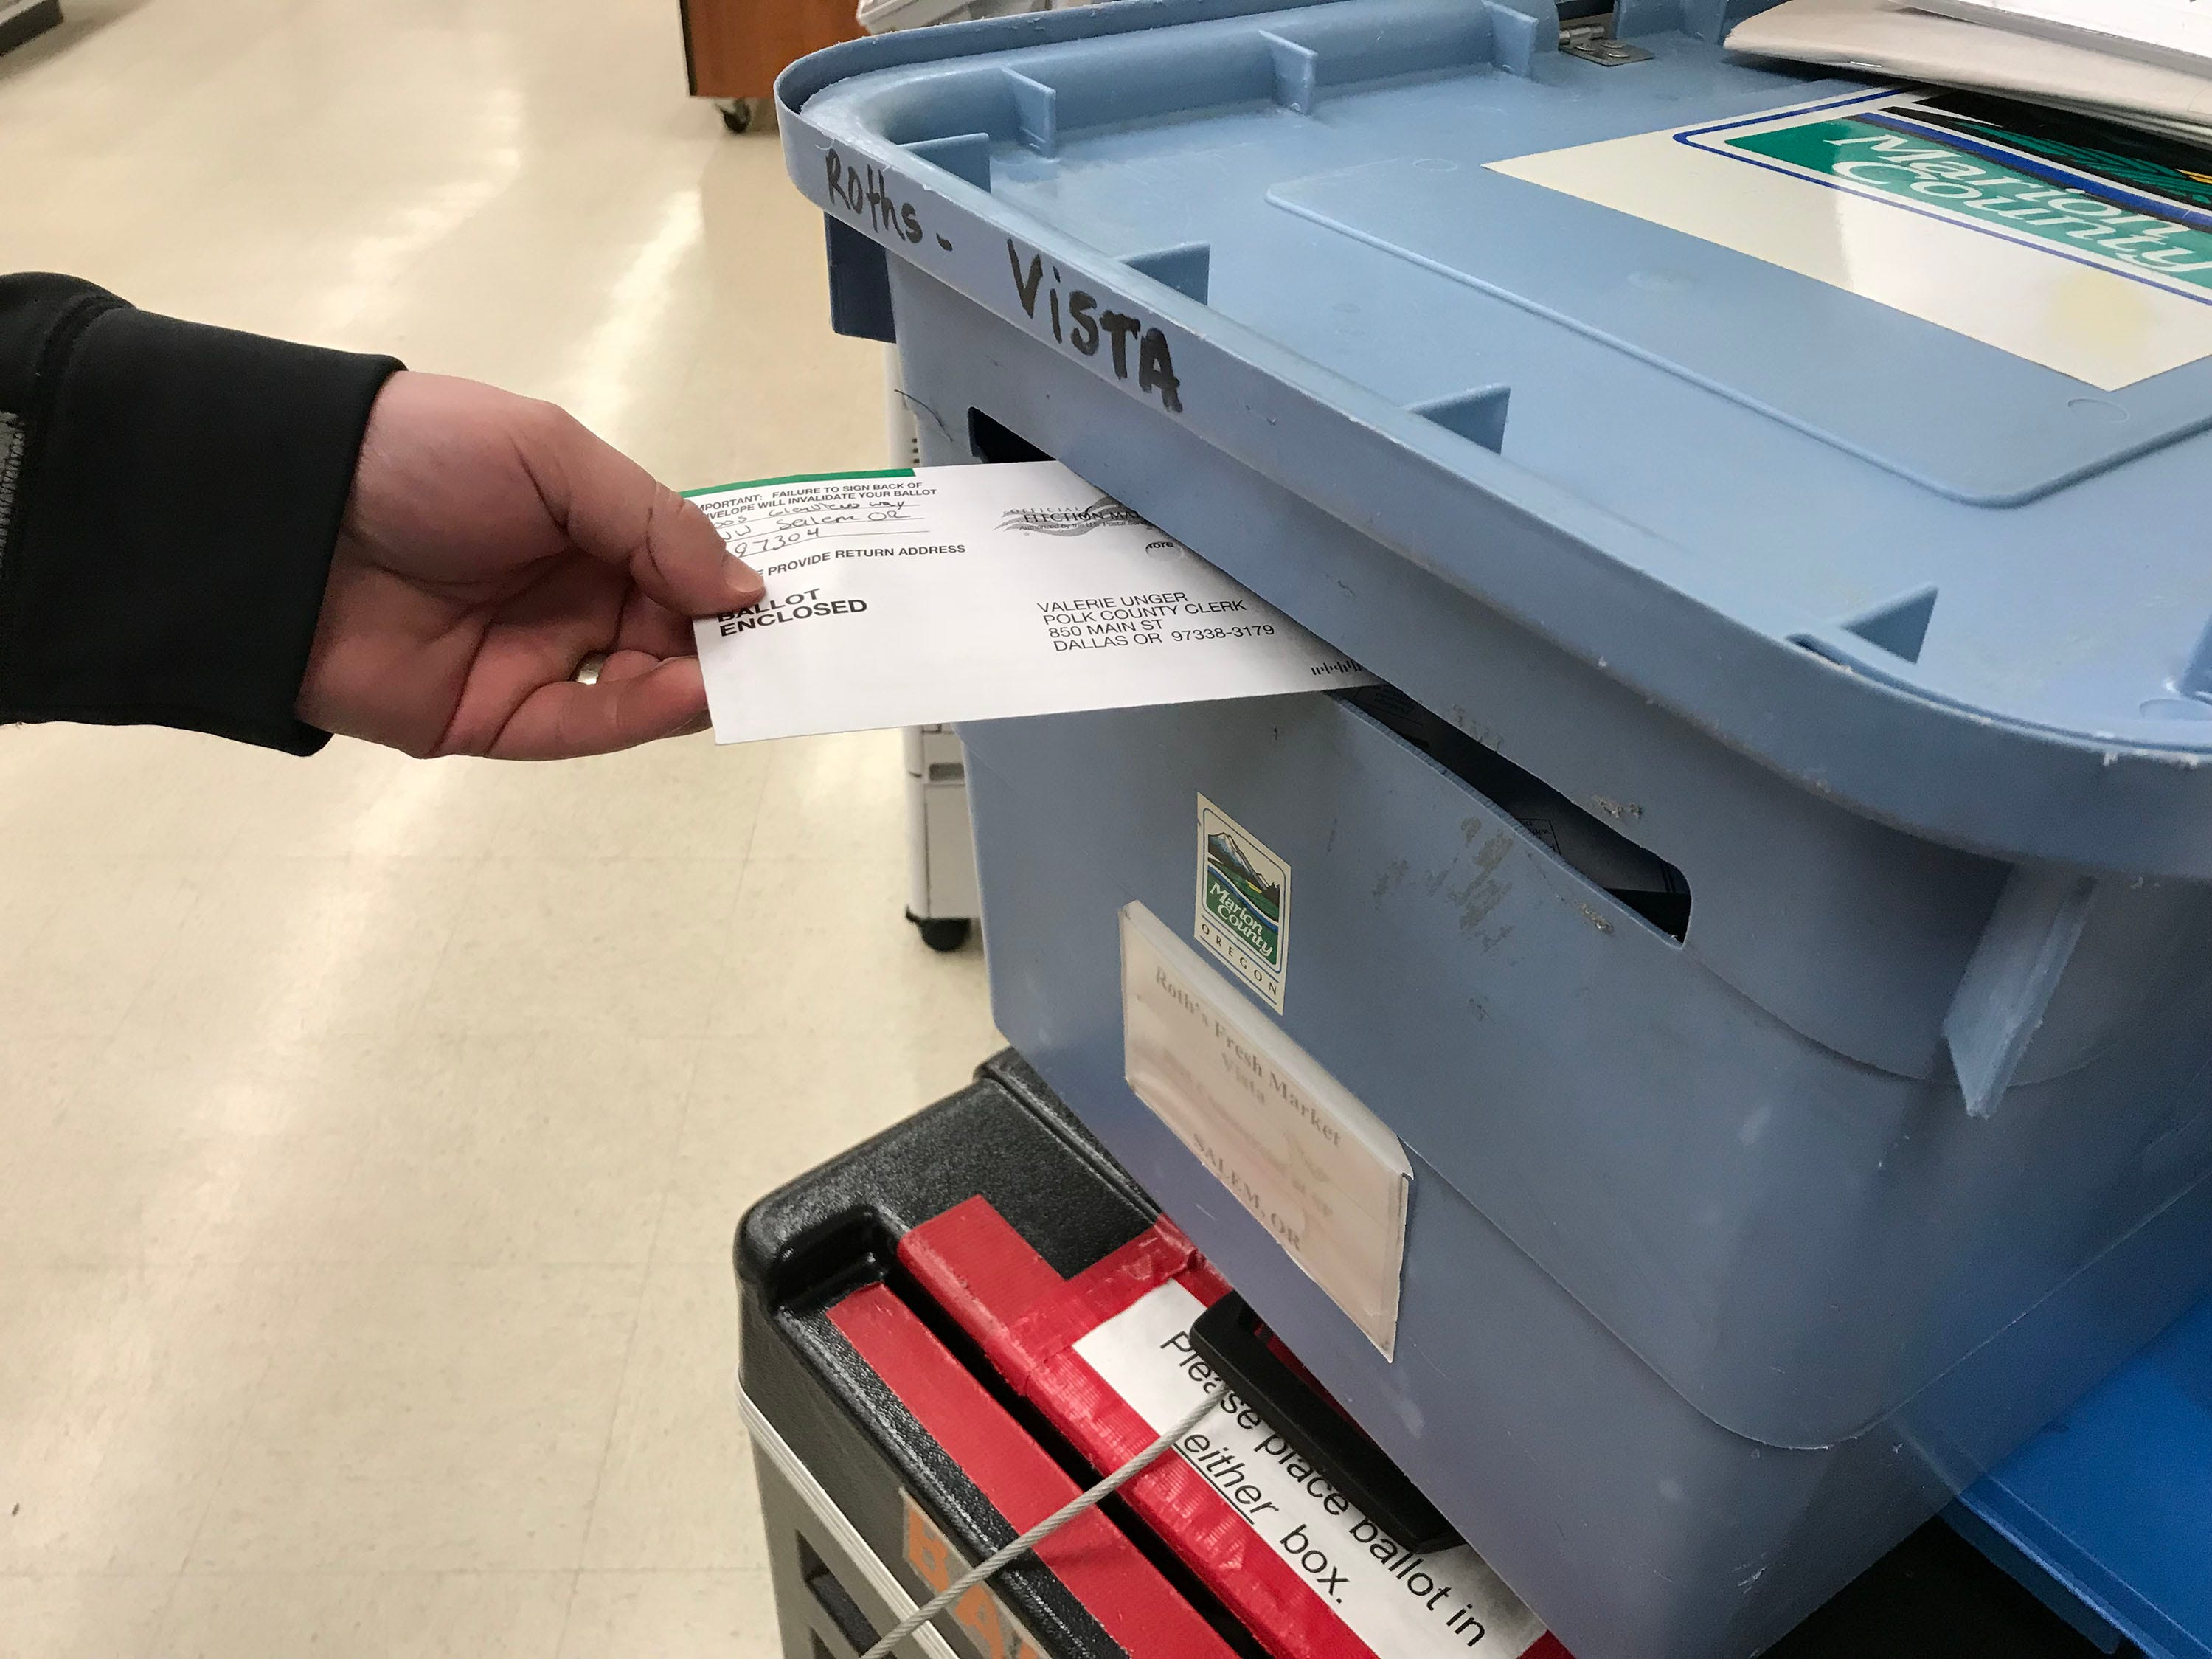 Voters drop off ballots before the deadline Tuesday evening, November 6, 2018 at the Roth's on Commercial Street SE in Salem.